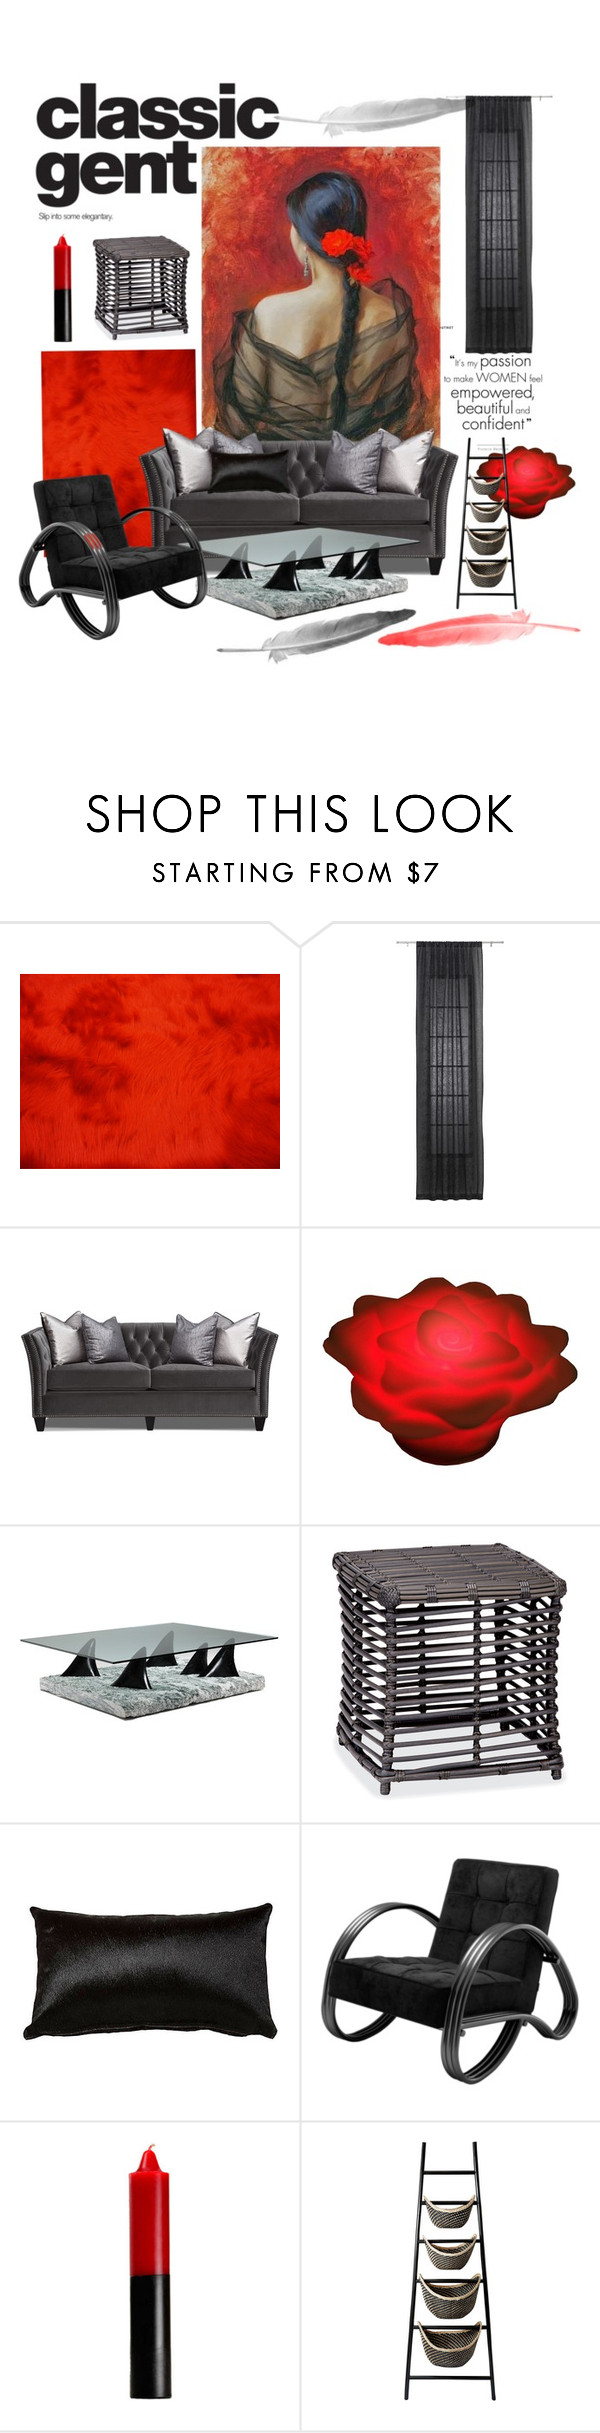 """""""Black and Red"""" by jesking ❤ liked on Polyvore featuring interior, interiors, interior design, home, home decor, interior decorating, CB2, Banana Boat, Thos. Baker and Eichholtz"""